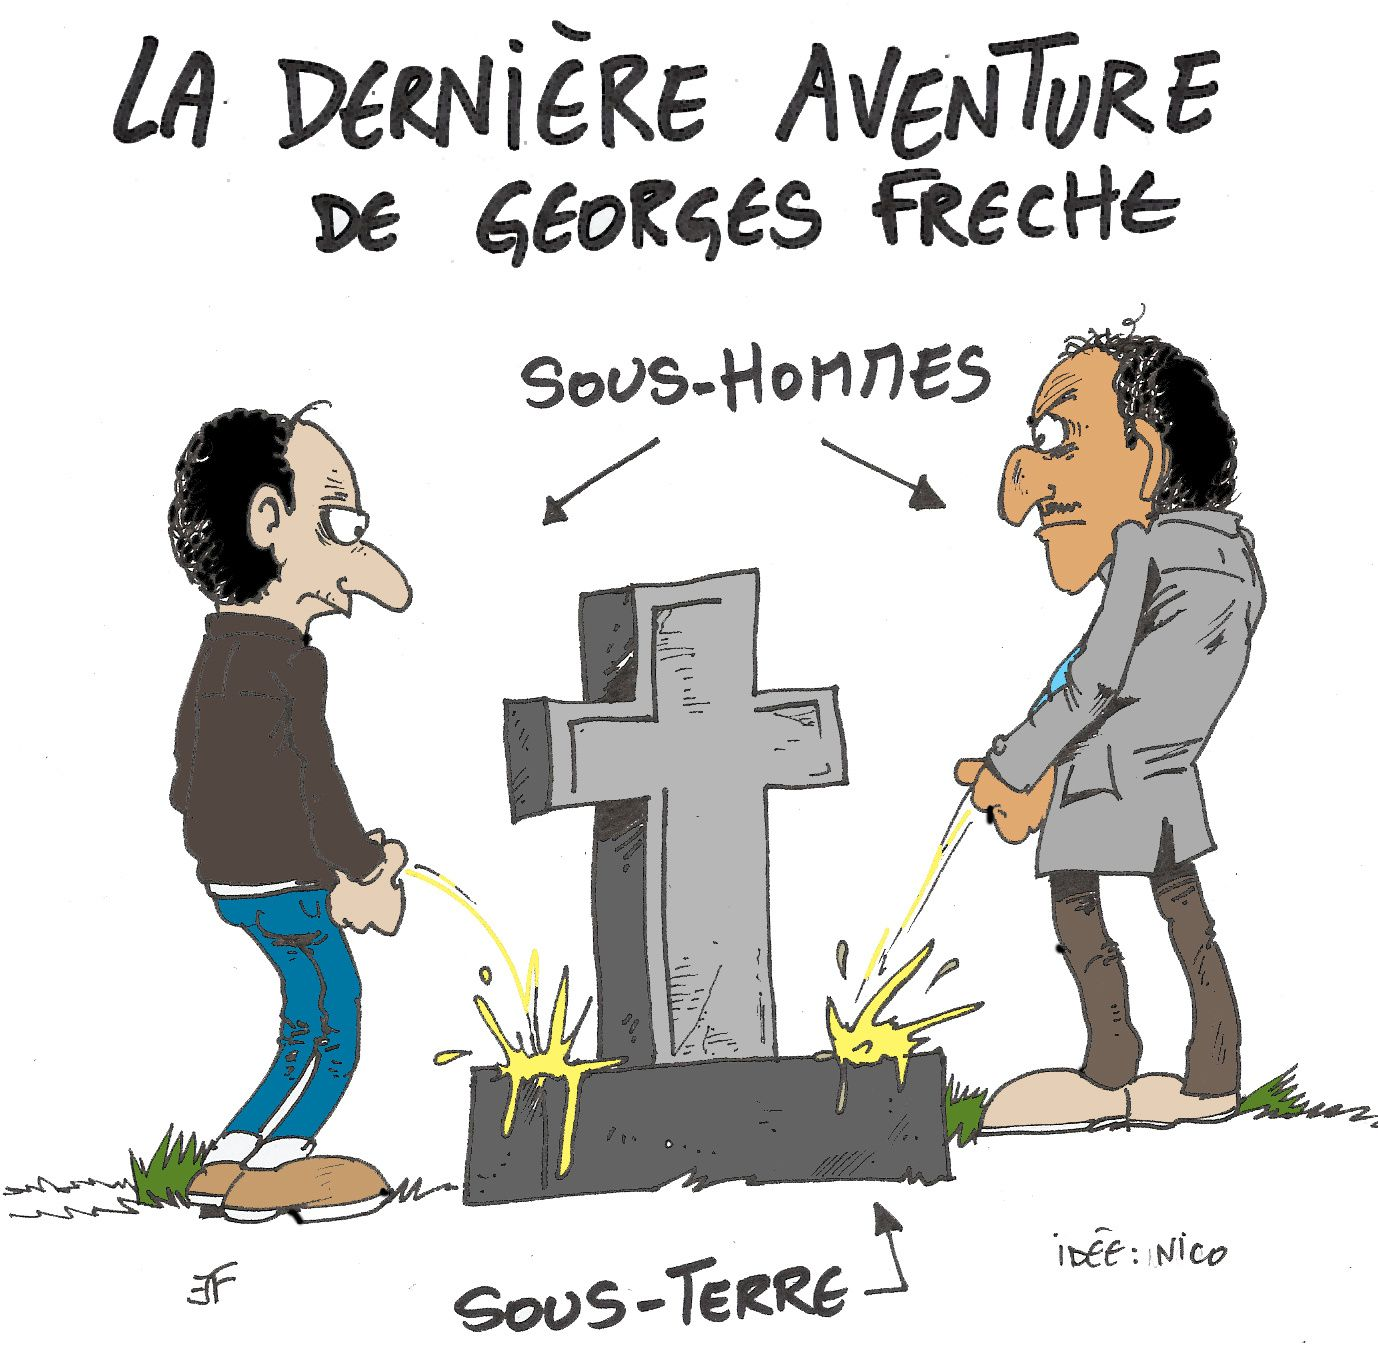 georges freche 2